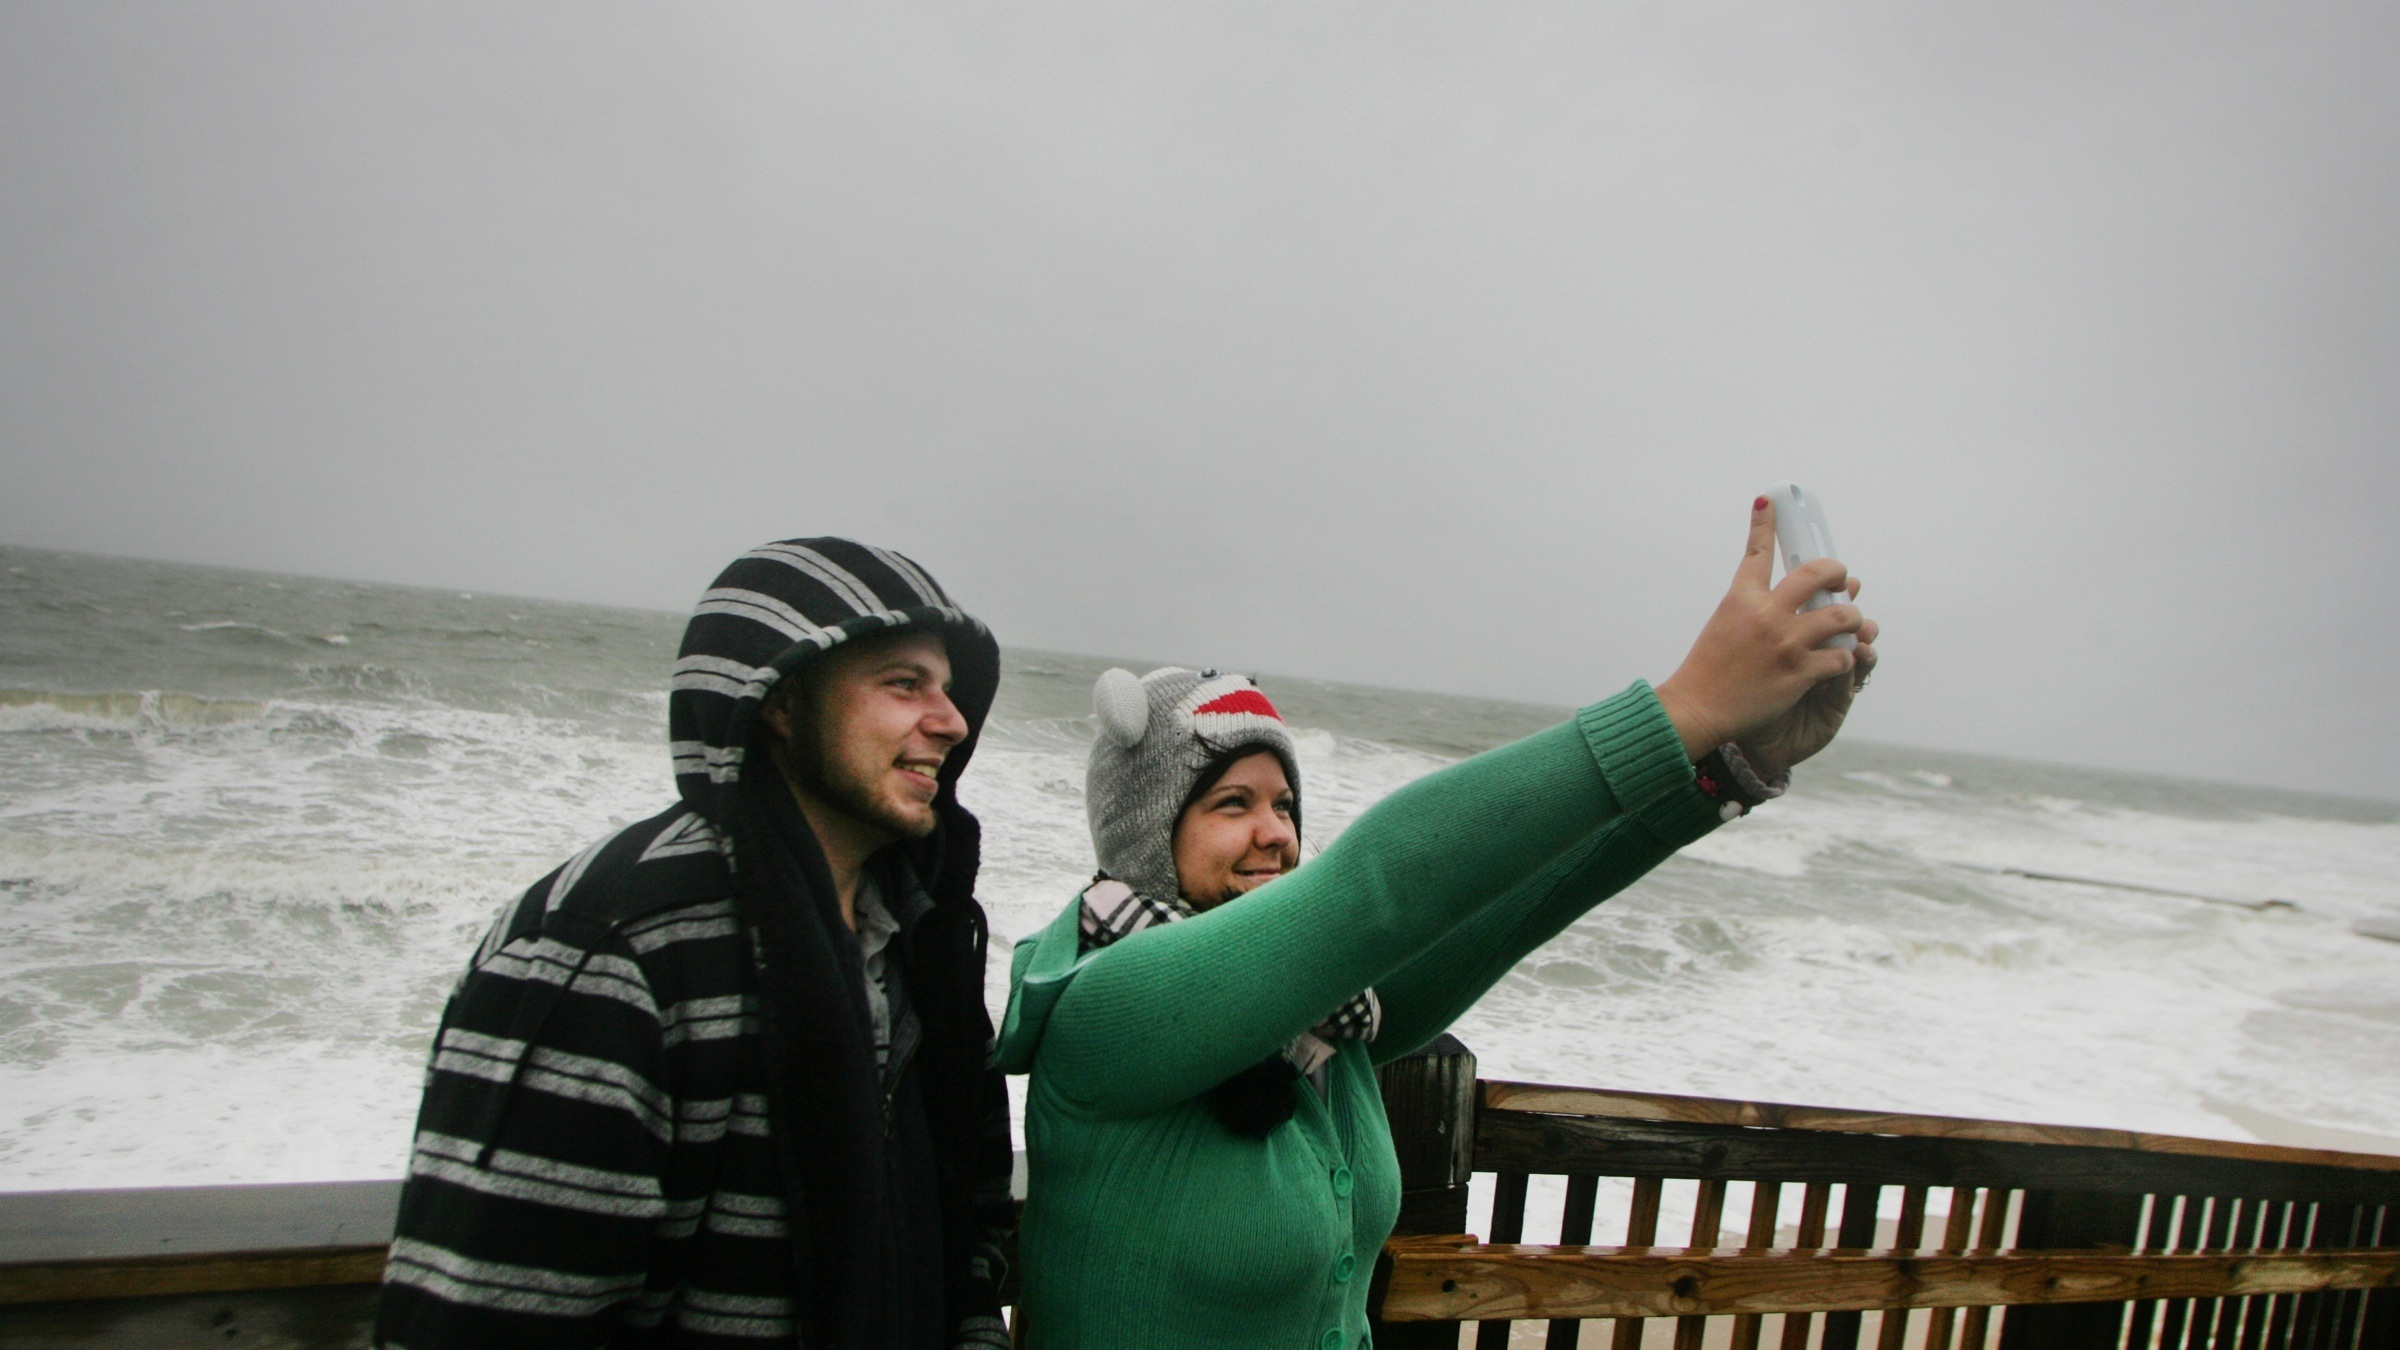 Lisa and Michael Chamberlain, a newlywed couple who is on their honeymoon, take a cell phone picture of themselves with the pounding surf from Hurricane Sandy in the background, Sunday, Oct. 28, 2012 in Virginia Beach, Va.   